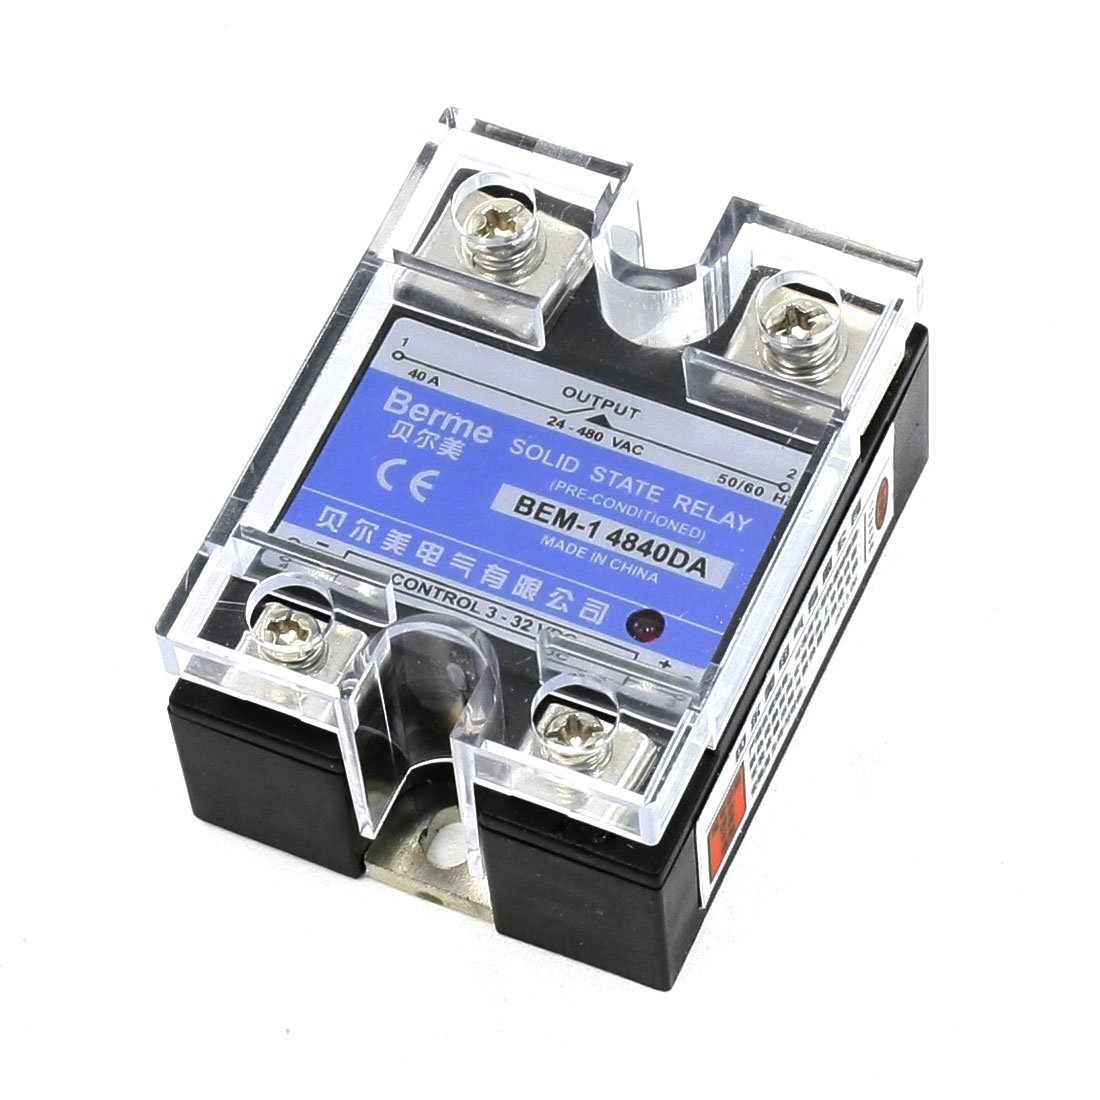 LHLL-24-480V AC DC to 3-32VDC Output Single Phase SSR Solid State Relay 40A dc ac single phase ssr solid state relay 120a 3 32v dc 24 480v ac